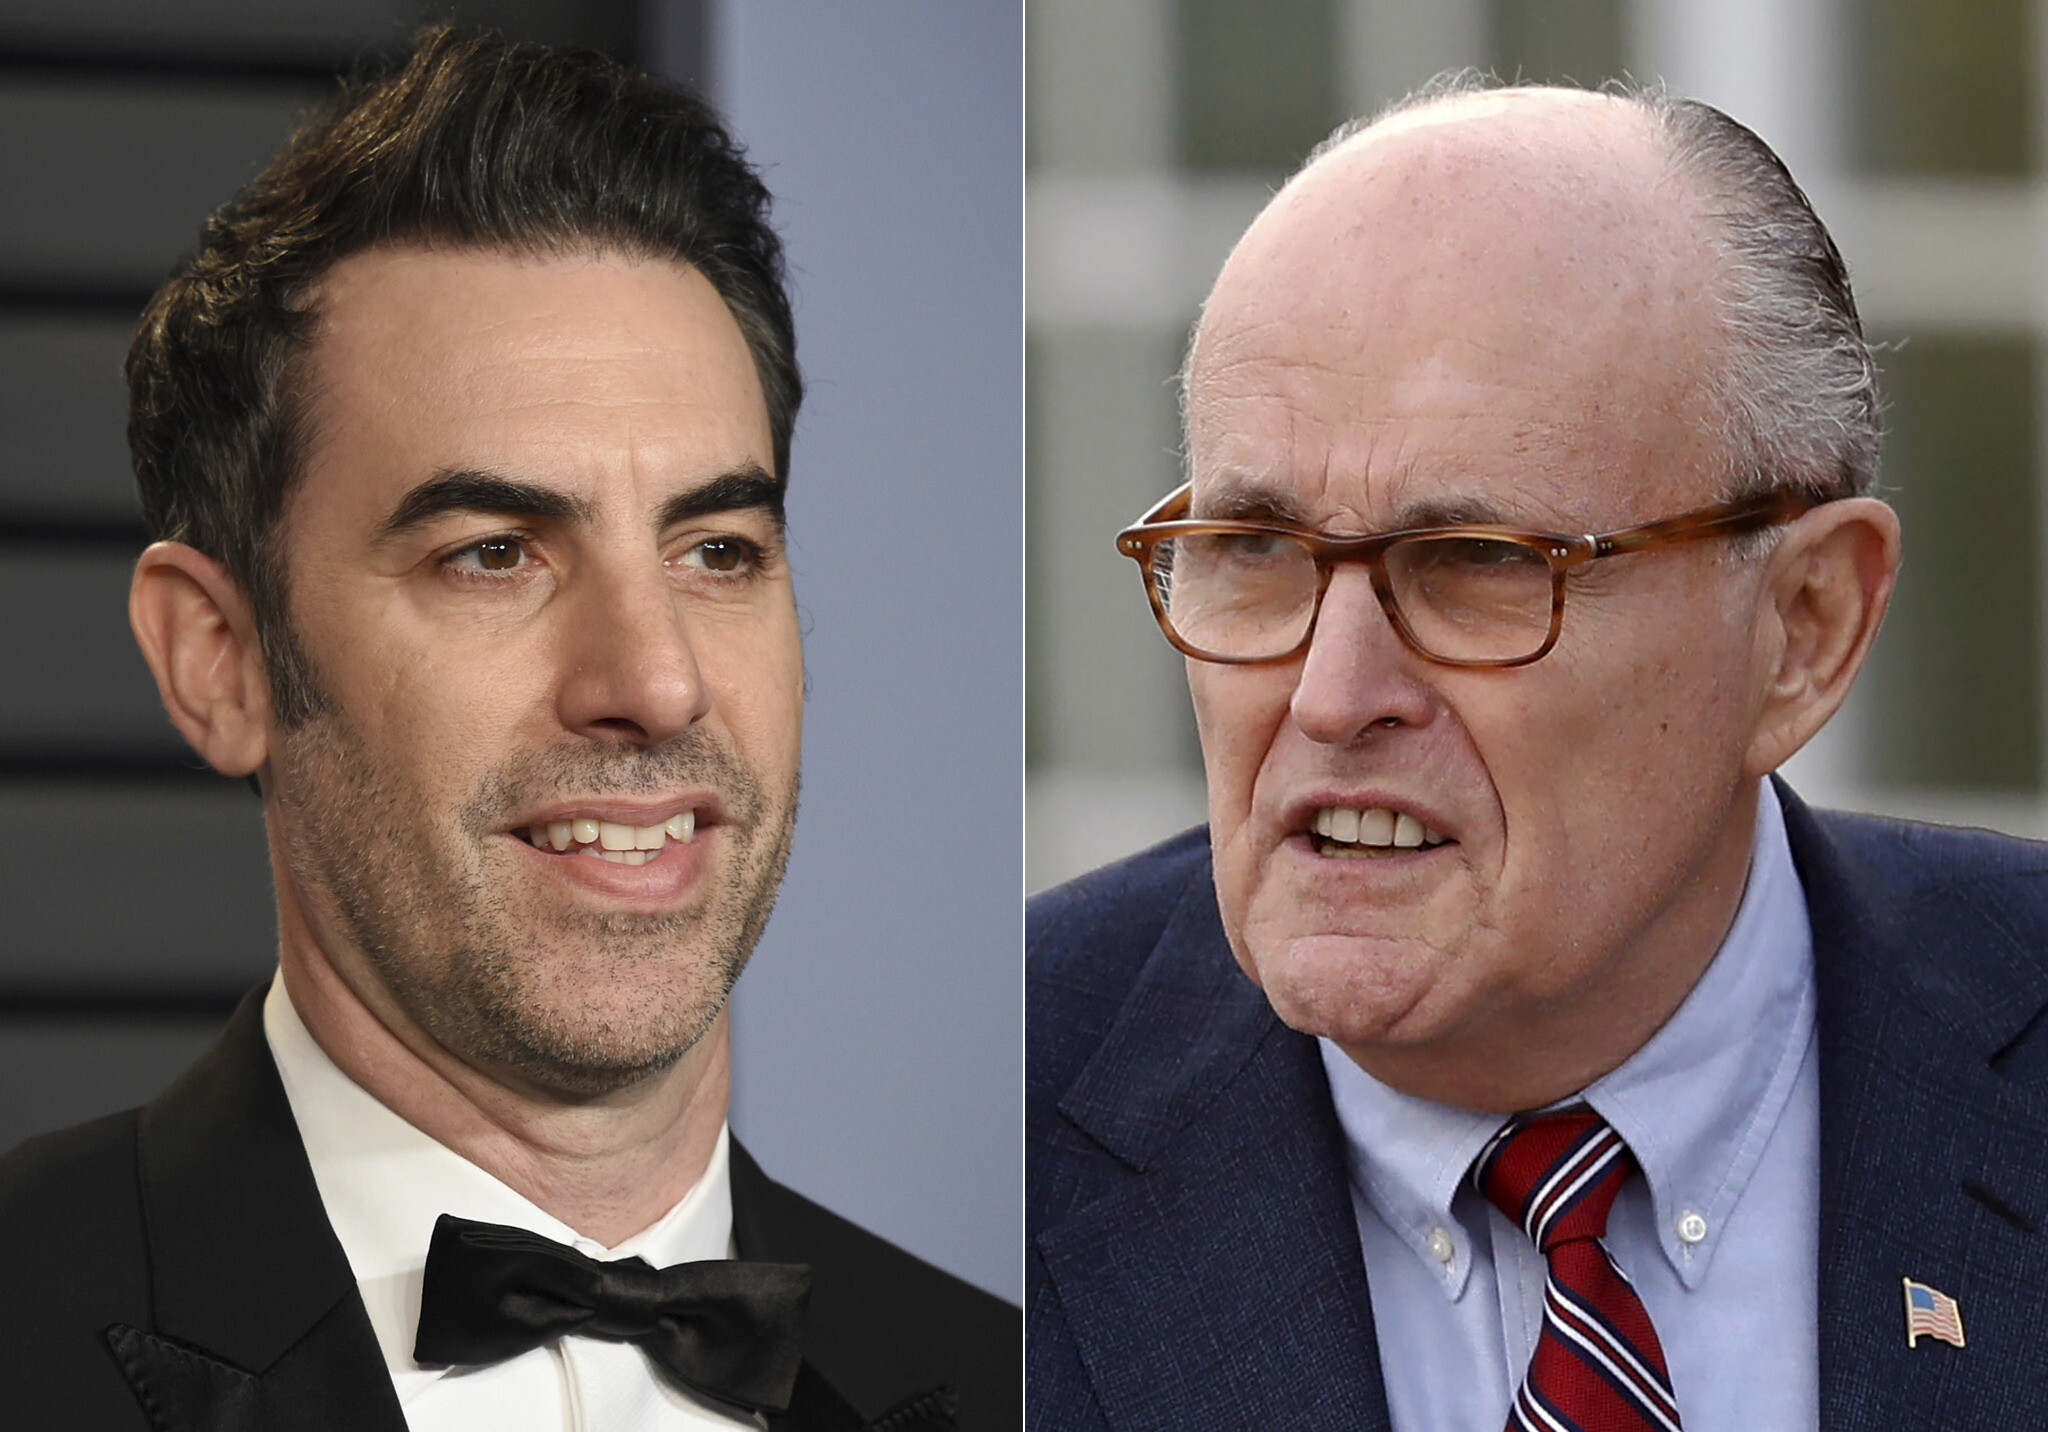 Rudy Giuliani Responds to Compromising 'Borat 2' Scene